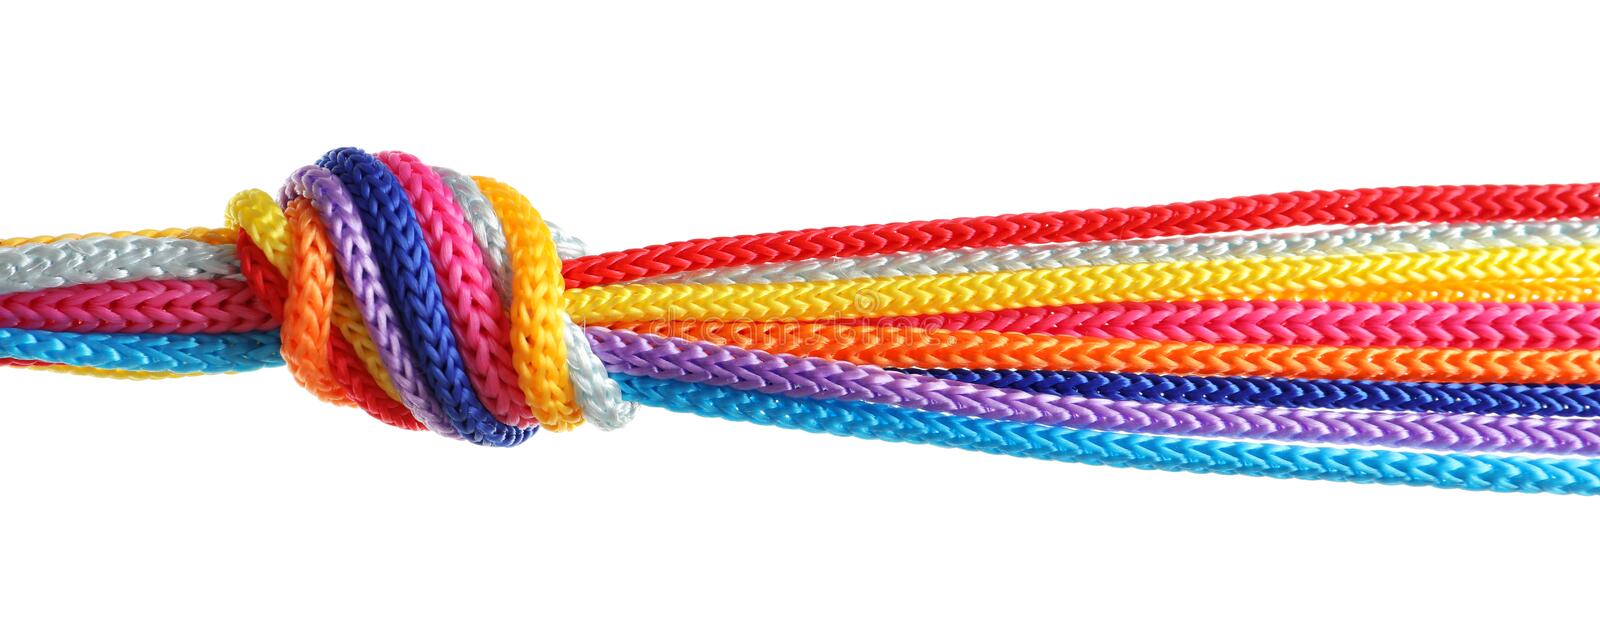 Colorful ropes tied together with knot royalty free stock image